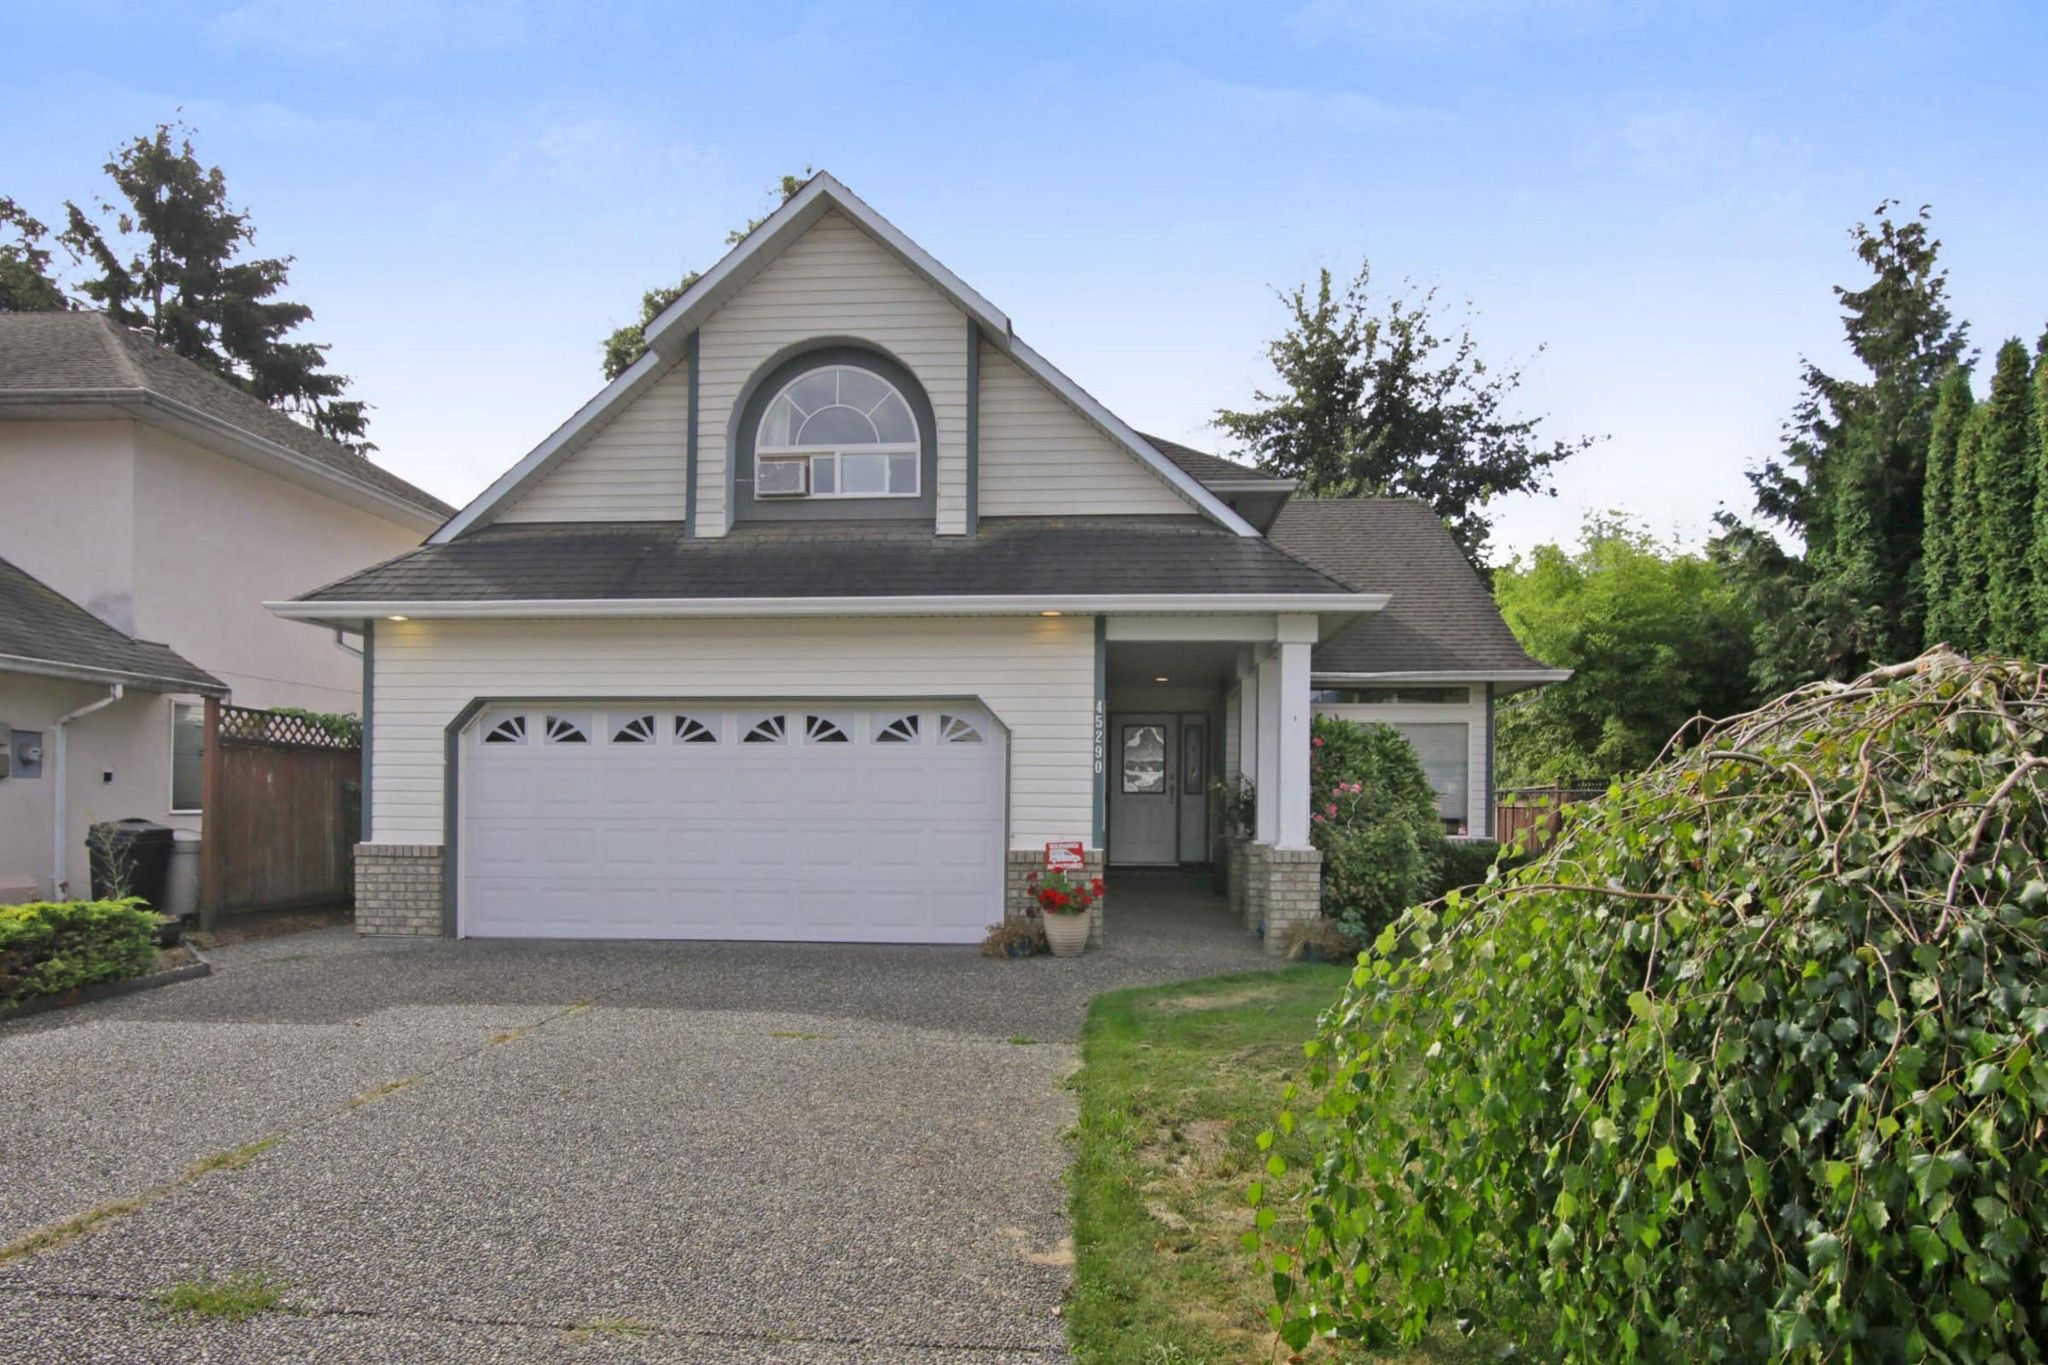 Main Photo: 45290 LABELLE Avenue in Chilliwack: Chilliwack W Young-Well House for sale : MLS®# R2319467